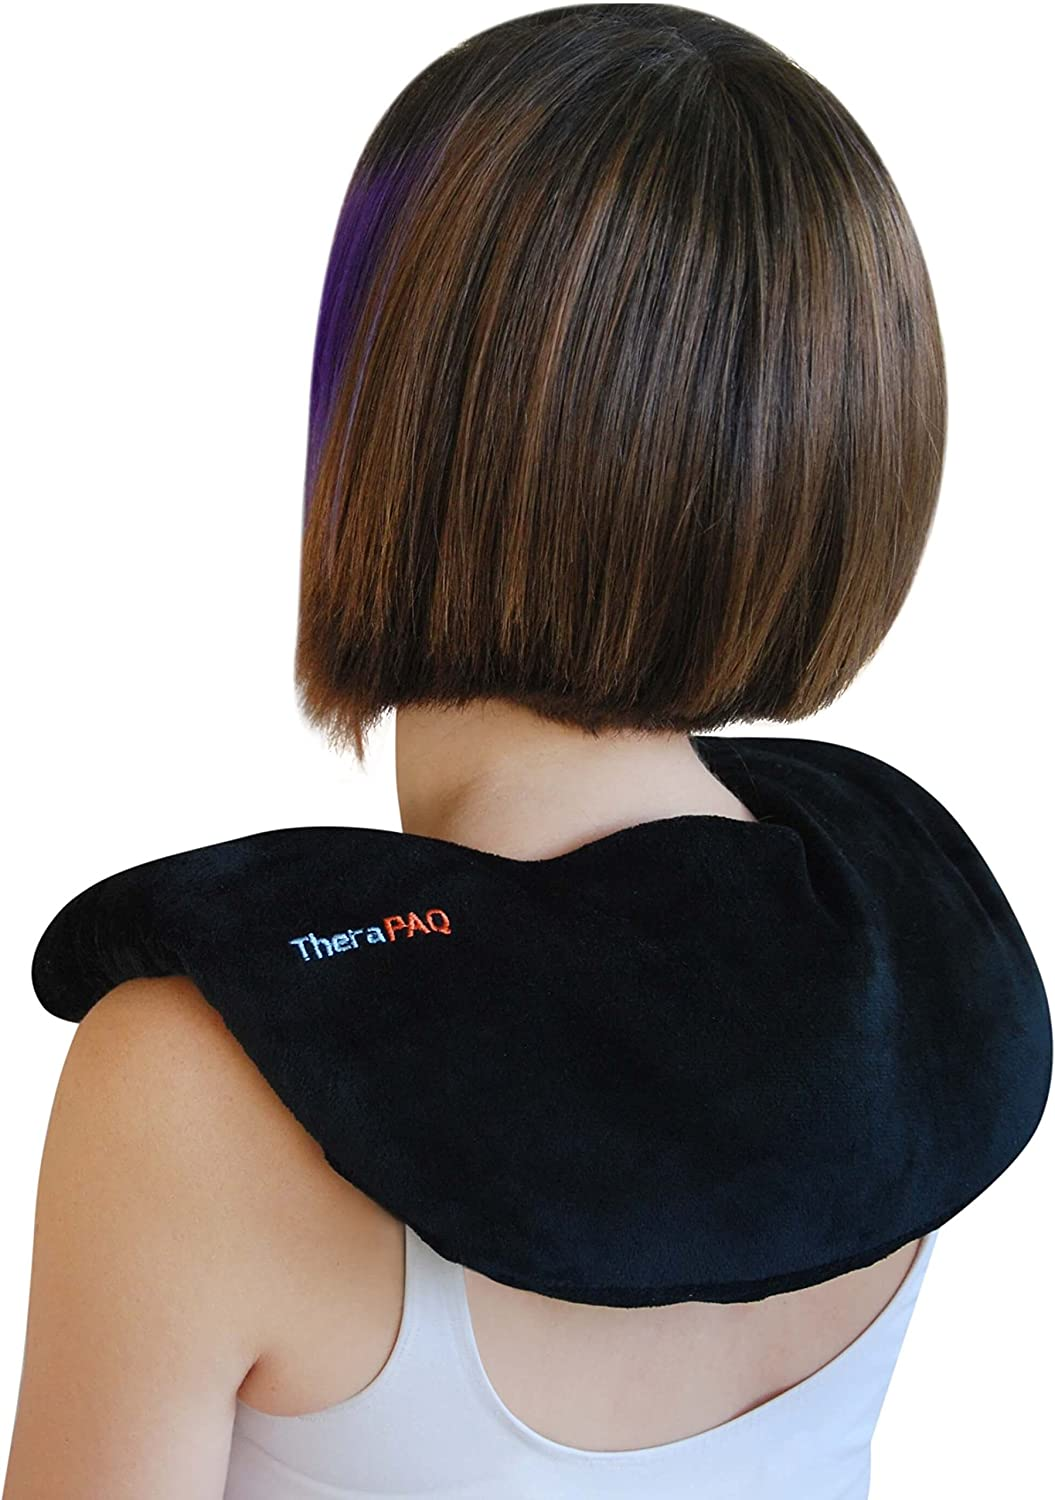 Neck and Shoulder Pain Relief Heating Pad by TheraPAQ Microwave Heated Wrap Black Best for Natural Moist Heat Therapy or as Cold Pack Non-Scented Reusable